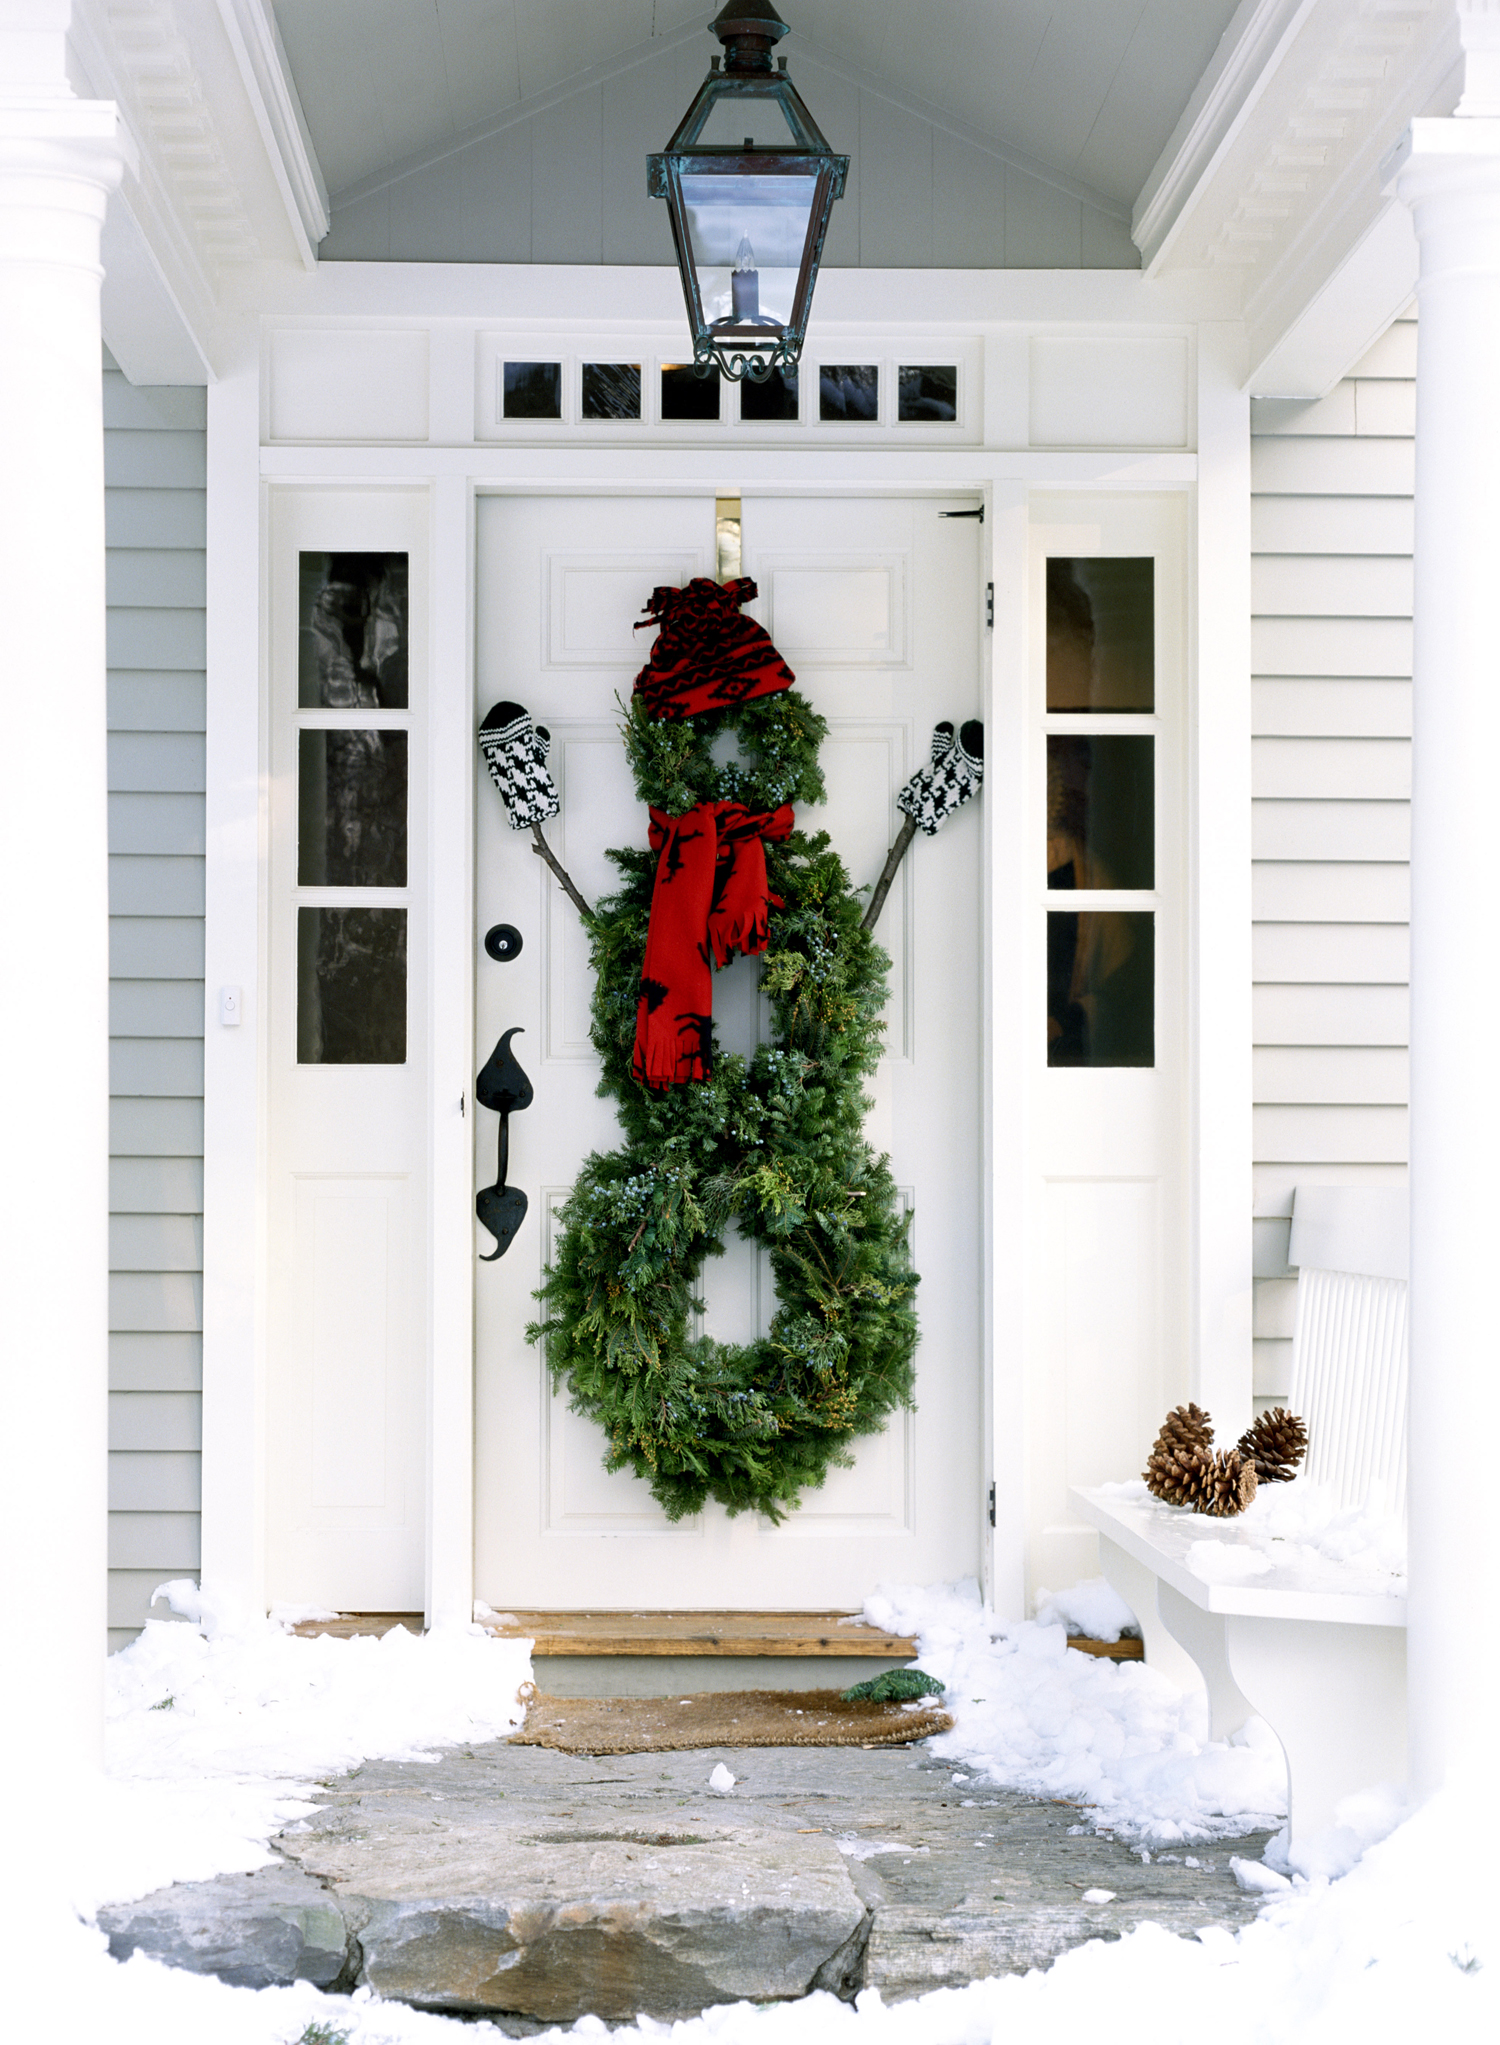 Outdoor Christmas Yard Decorations - Outside Holiday Decor